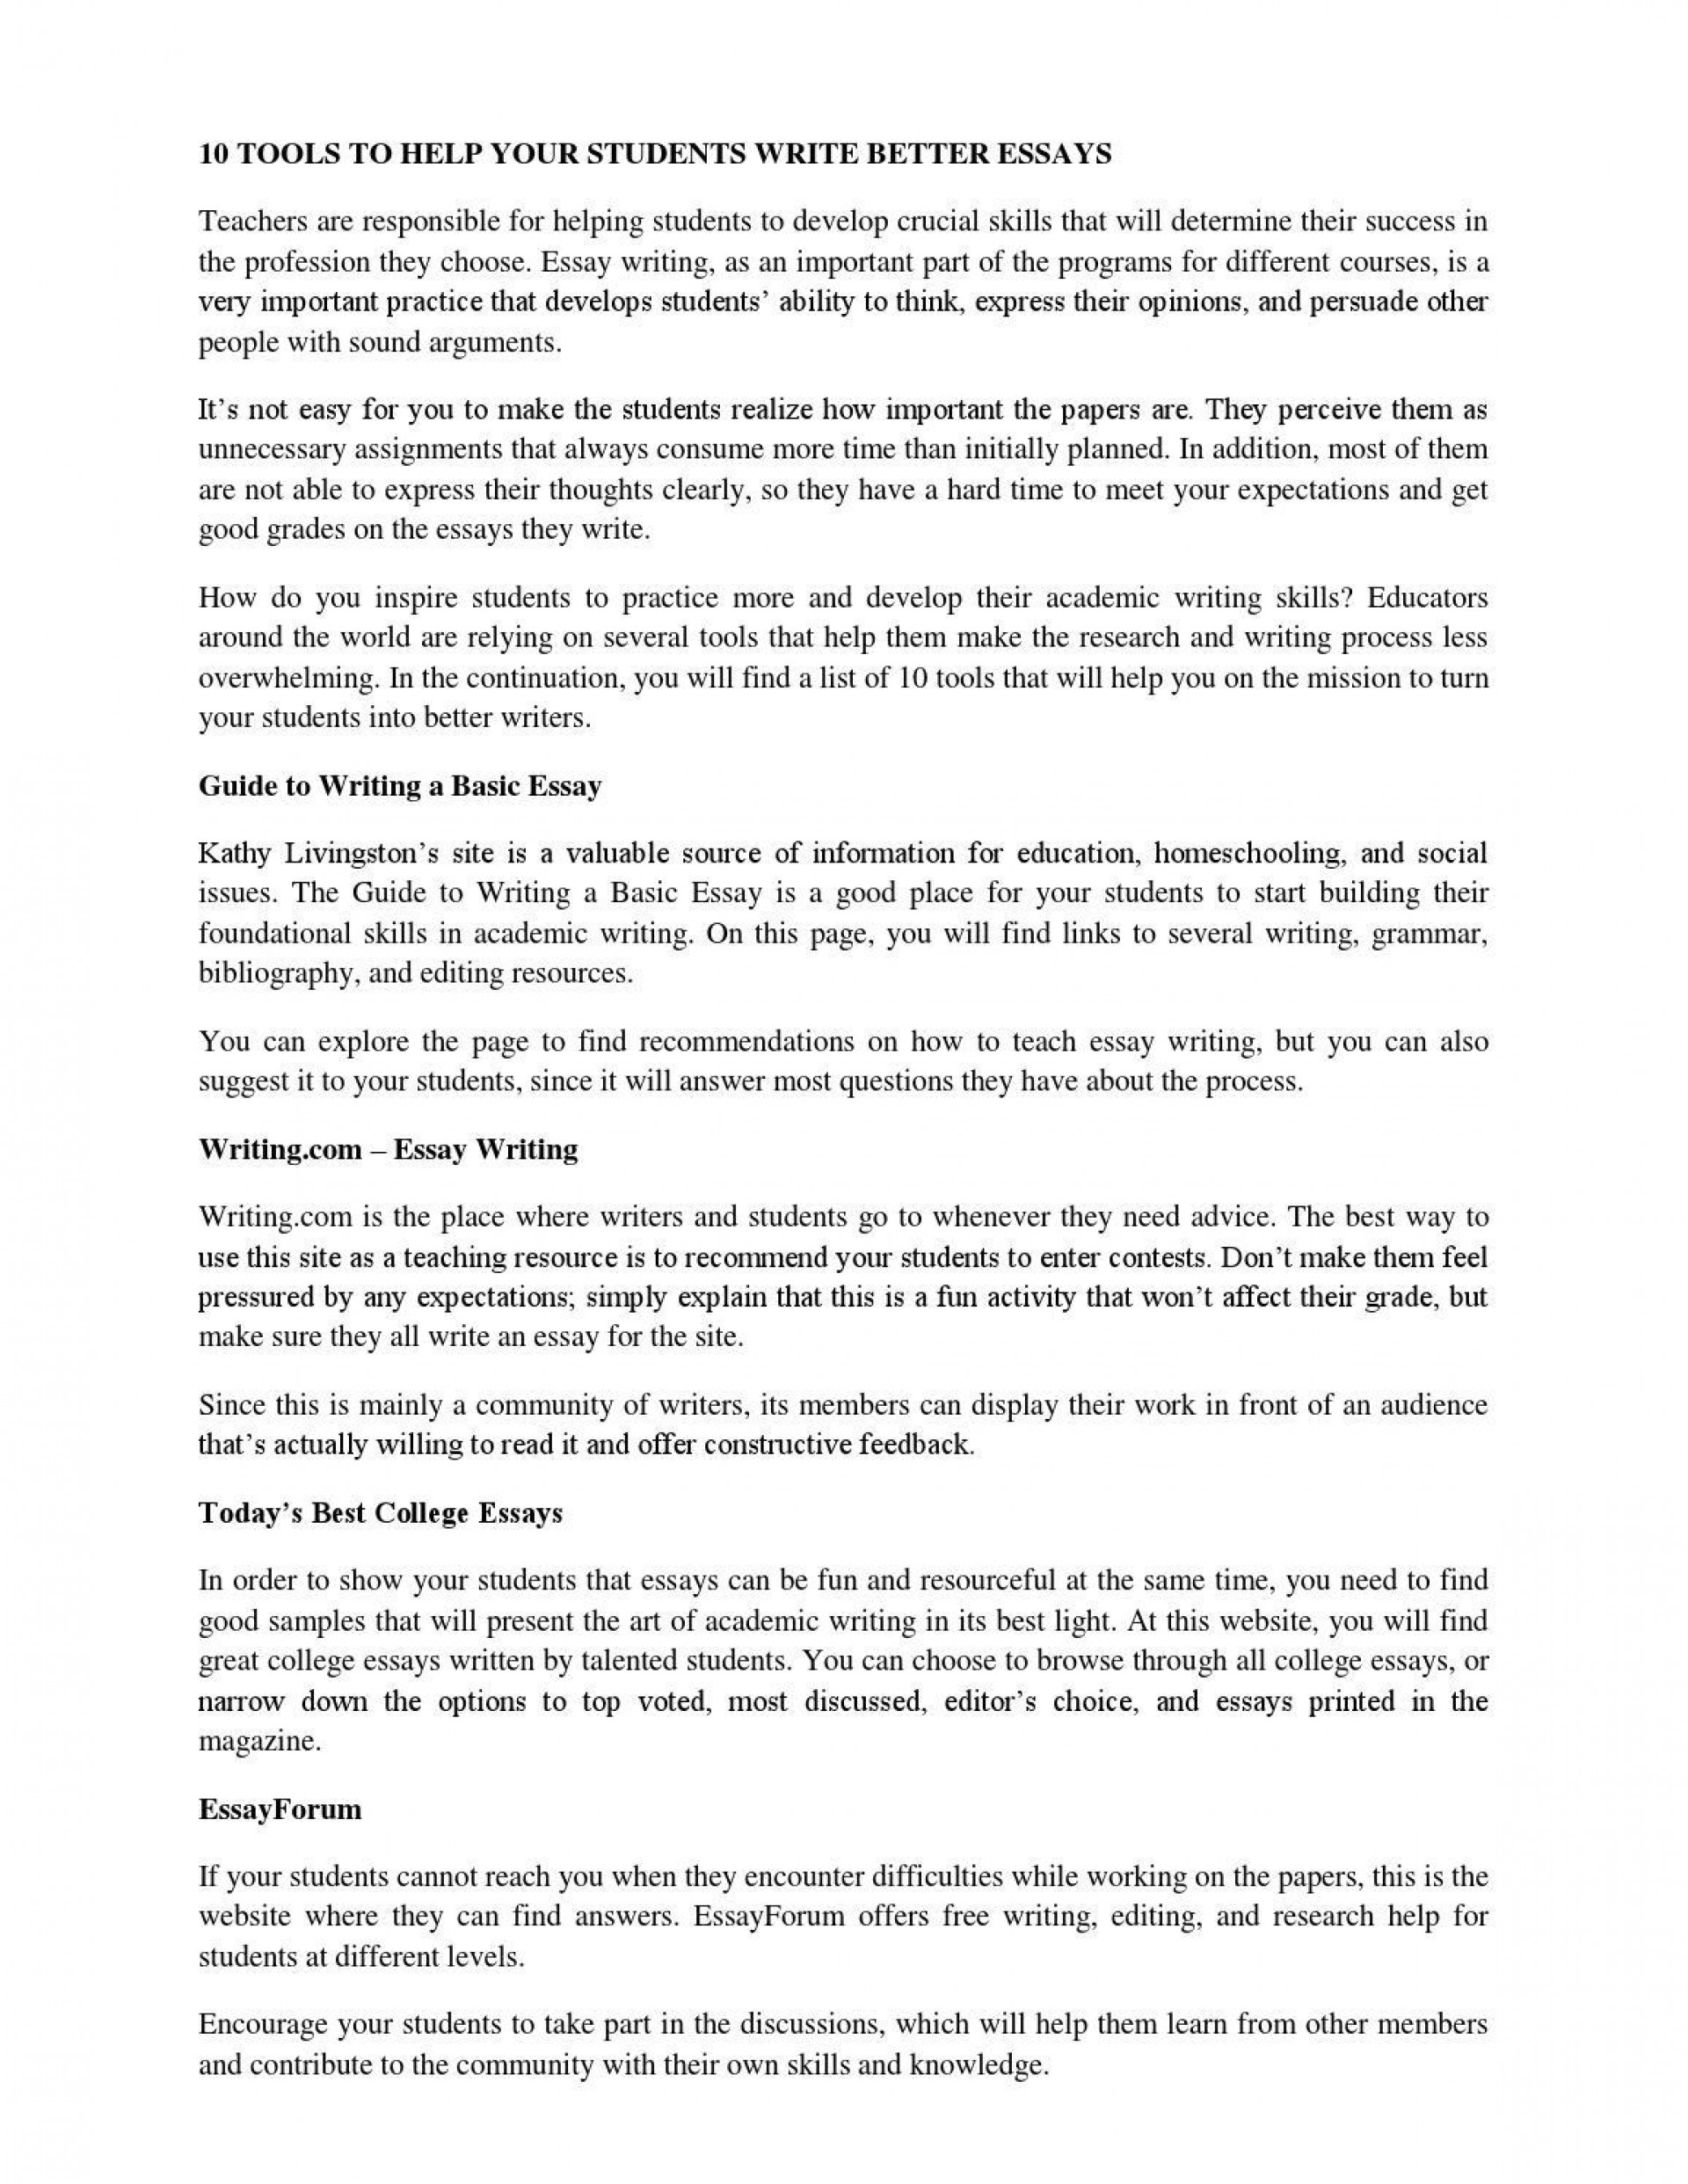 002 Essay Writing Websites Reviews For Students Editing Free Page Research Paper Example That20 Outstanding Best 1920